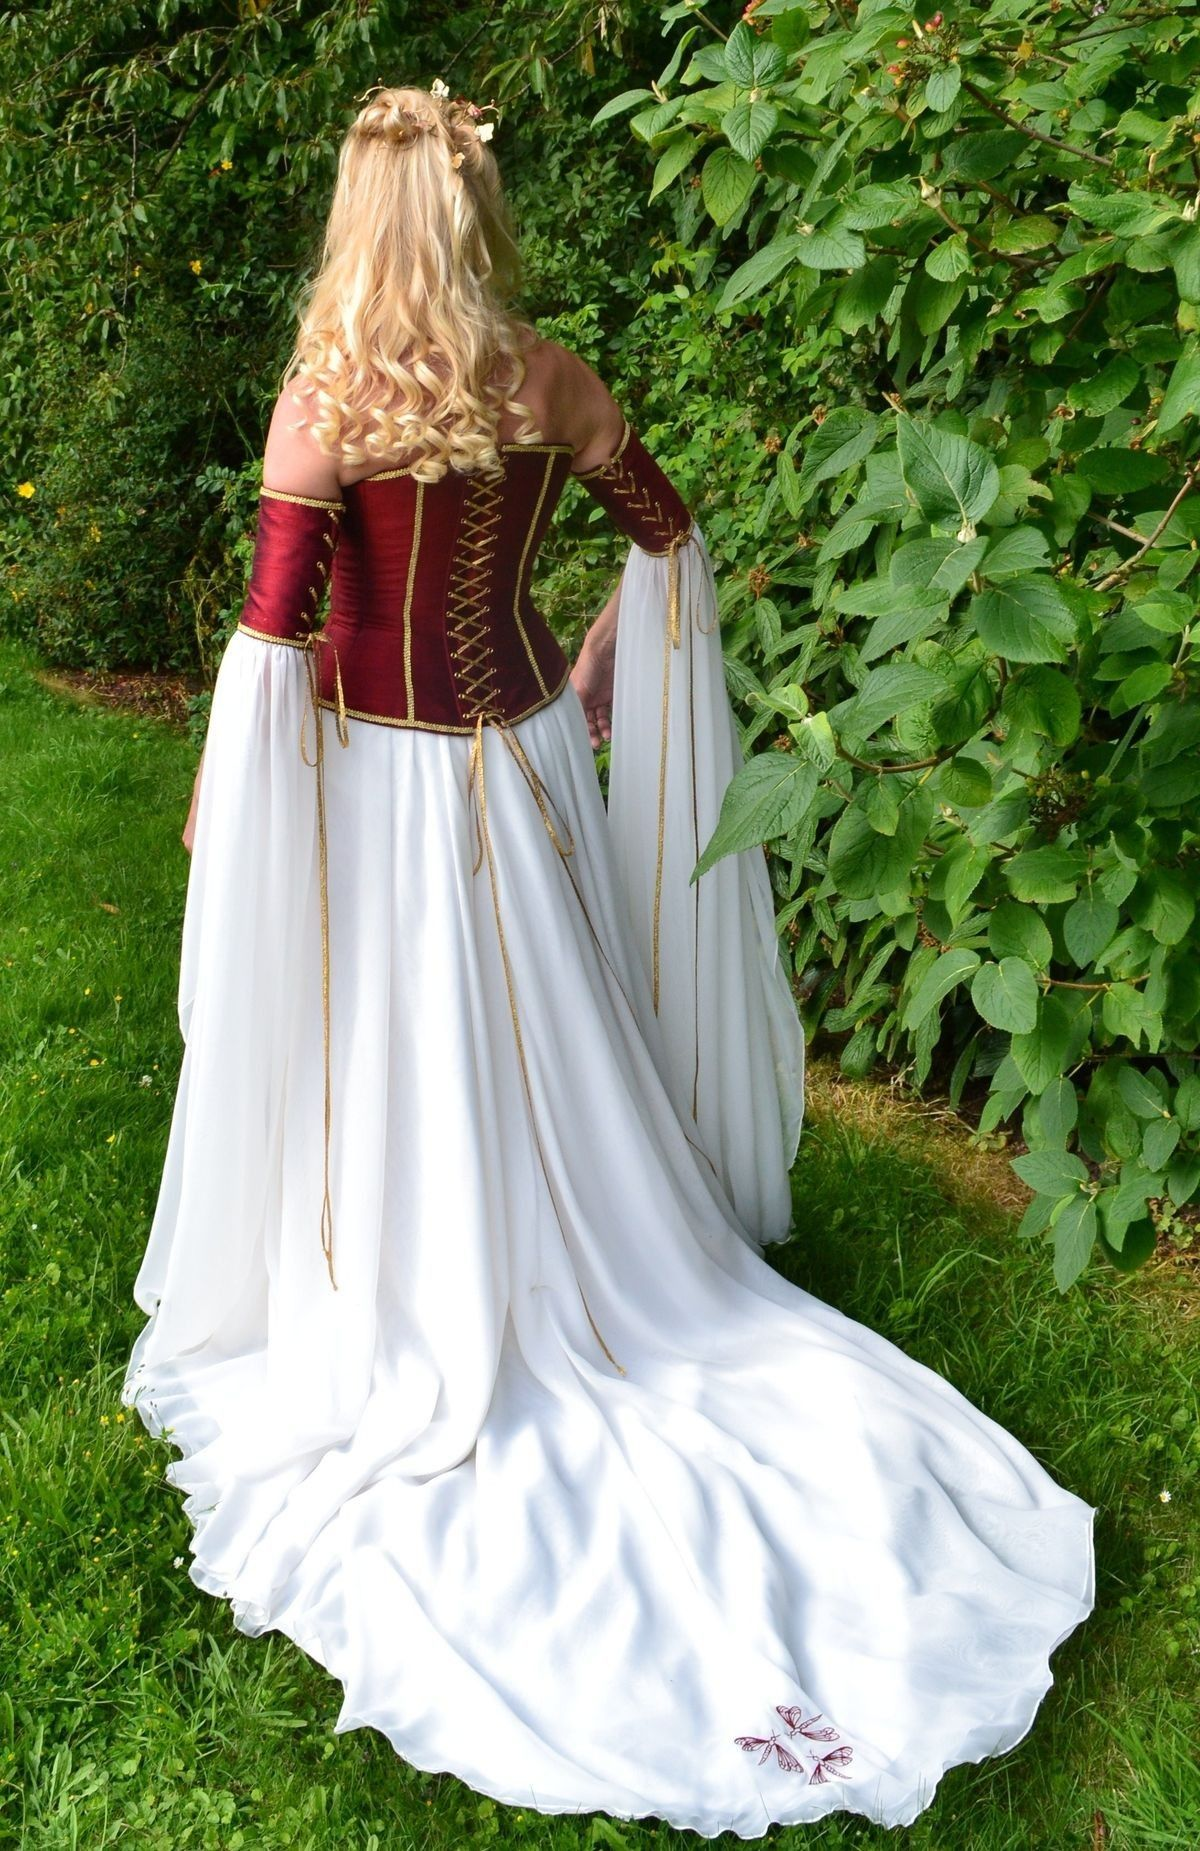 Pin by Lavender Smell on Medieval style (With images